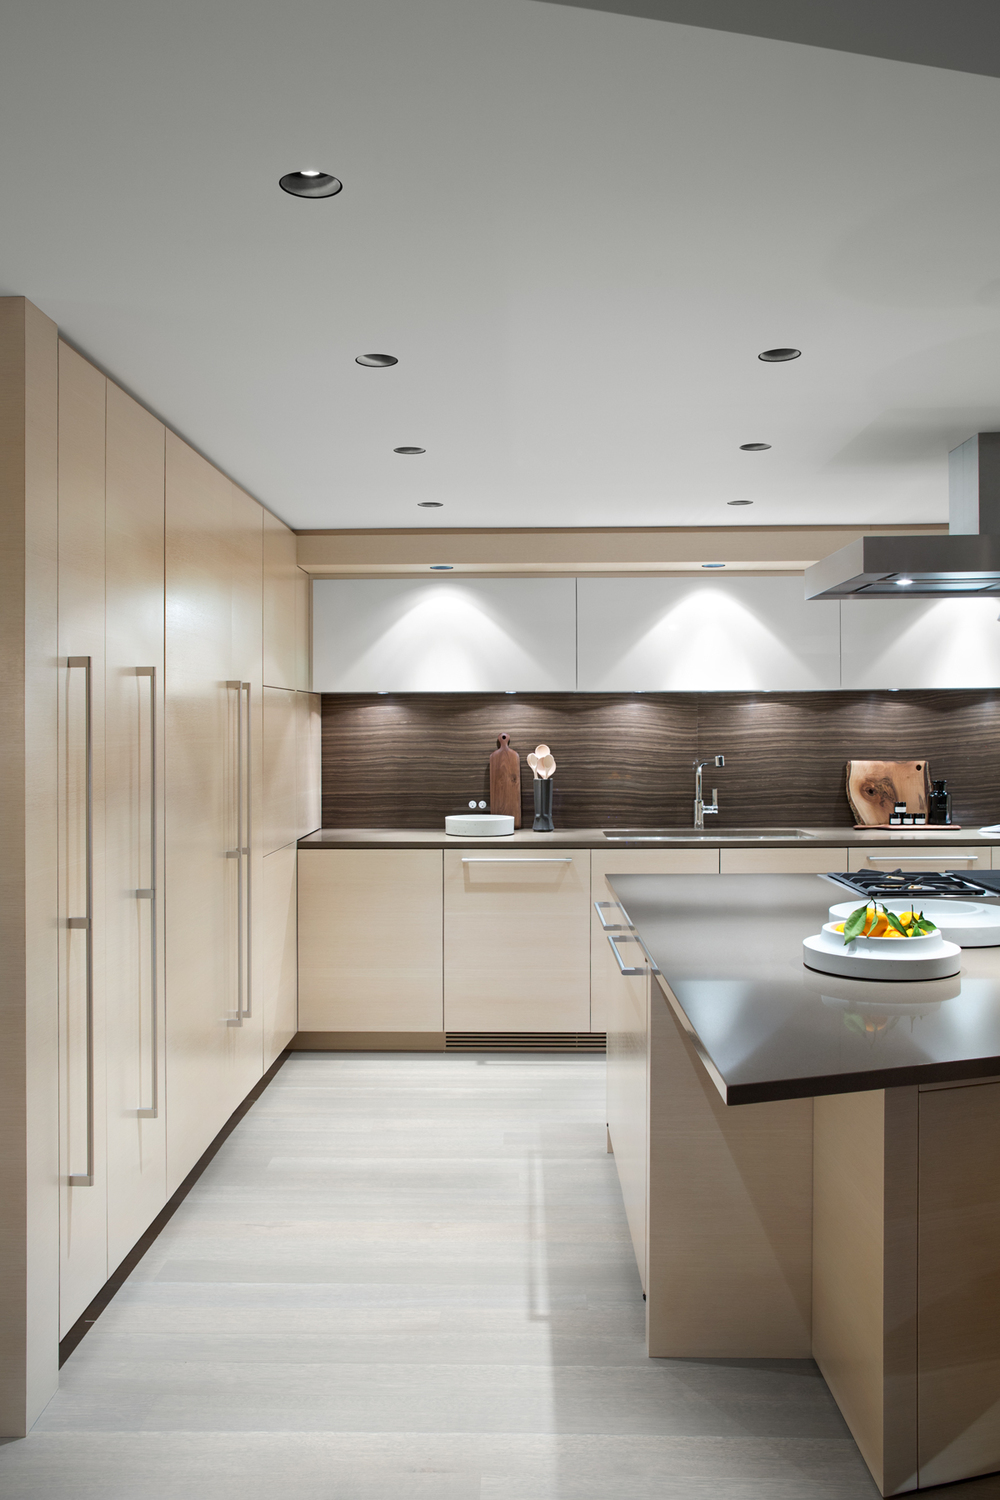 As part of the custom millwork, all appliances are integrated and invisible, which creates a minimal and quiet effect.